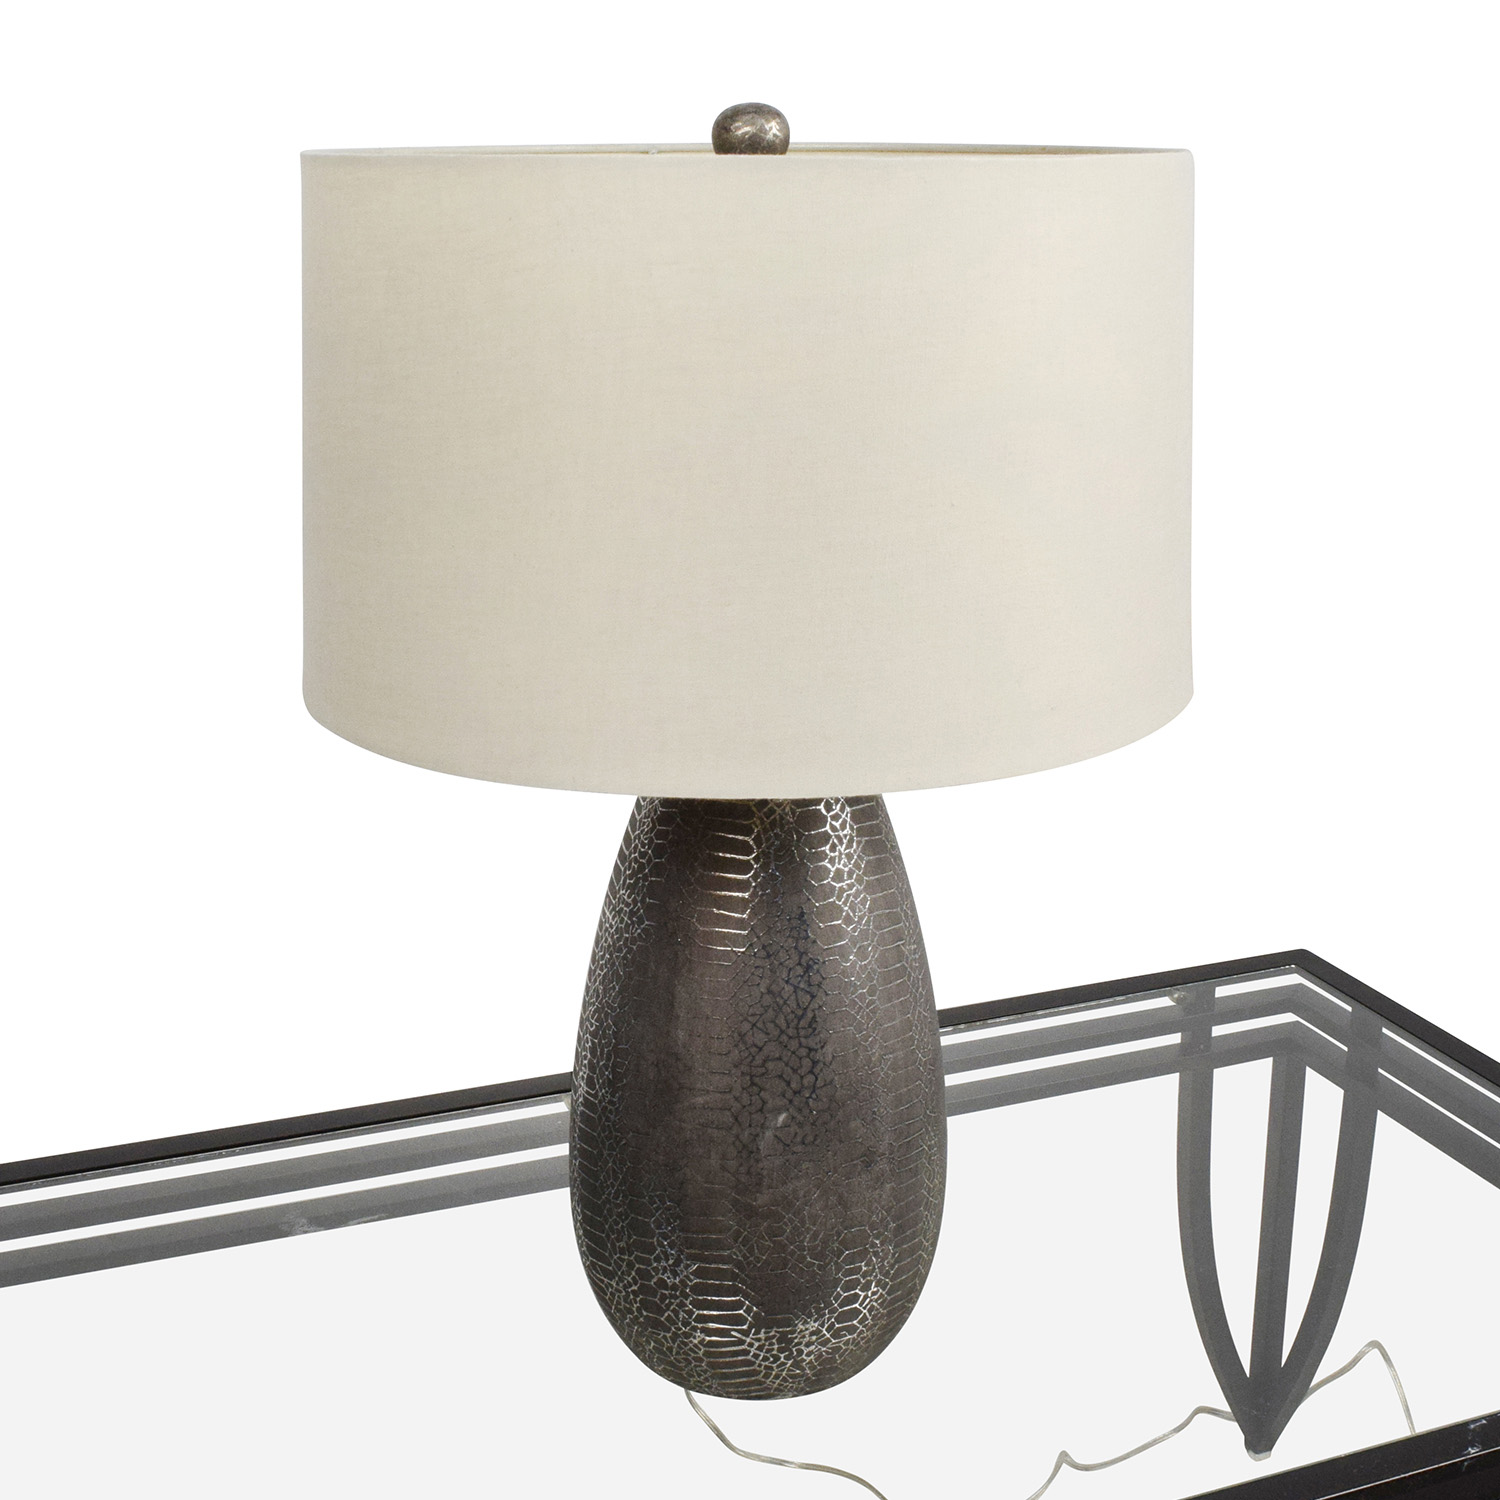 Crate and Barrel Crate & Barrel Silver Chrome Lamp second hand